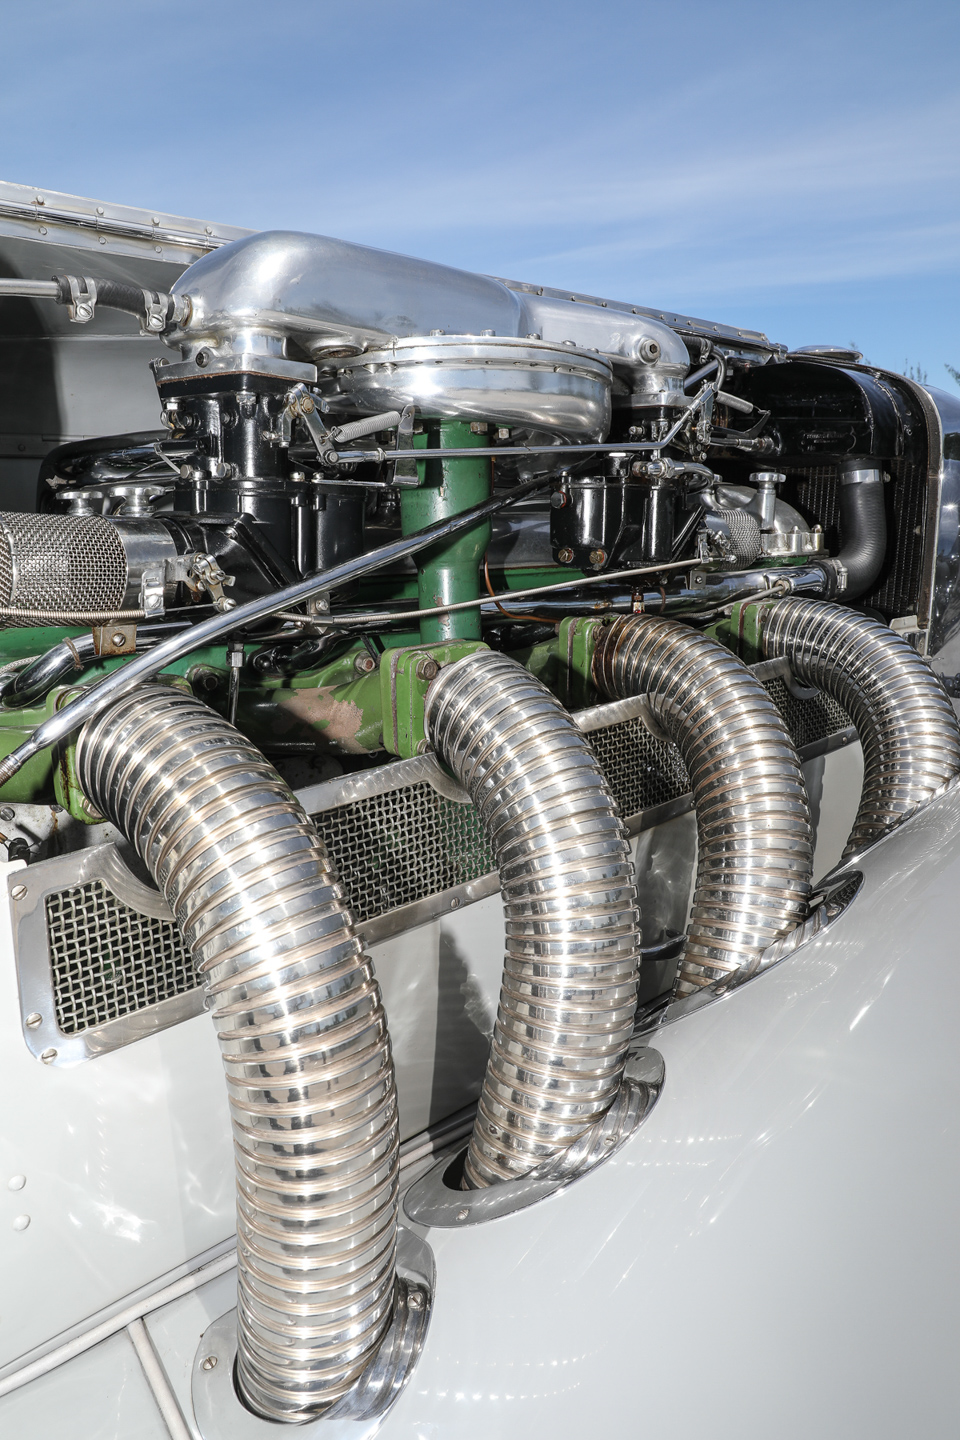 1935 Duesenberg SSJ engine exhaust